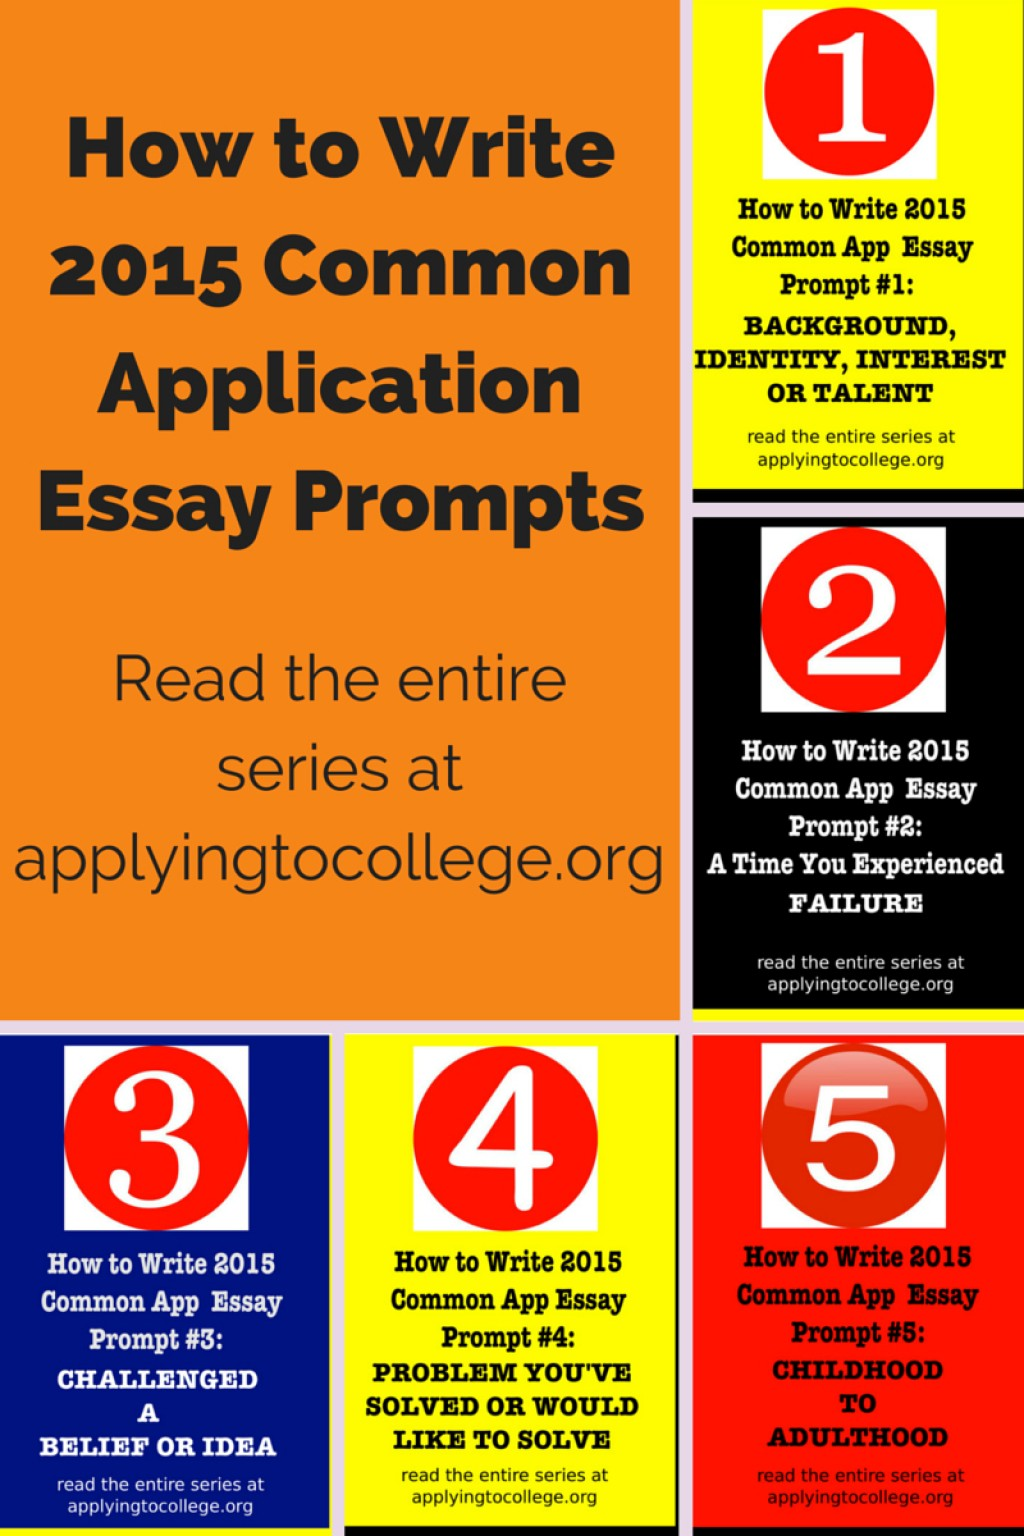 011 Essay Example Common App Prompt How To Write Application Prompts Unusual 1 Examples 3 4 Large